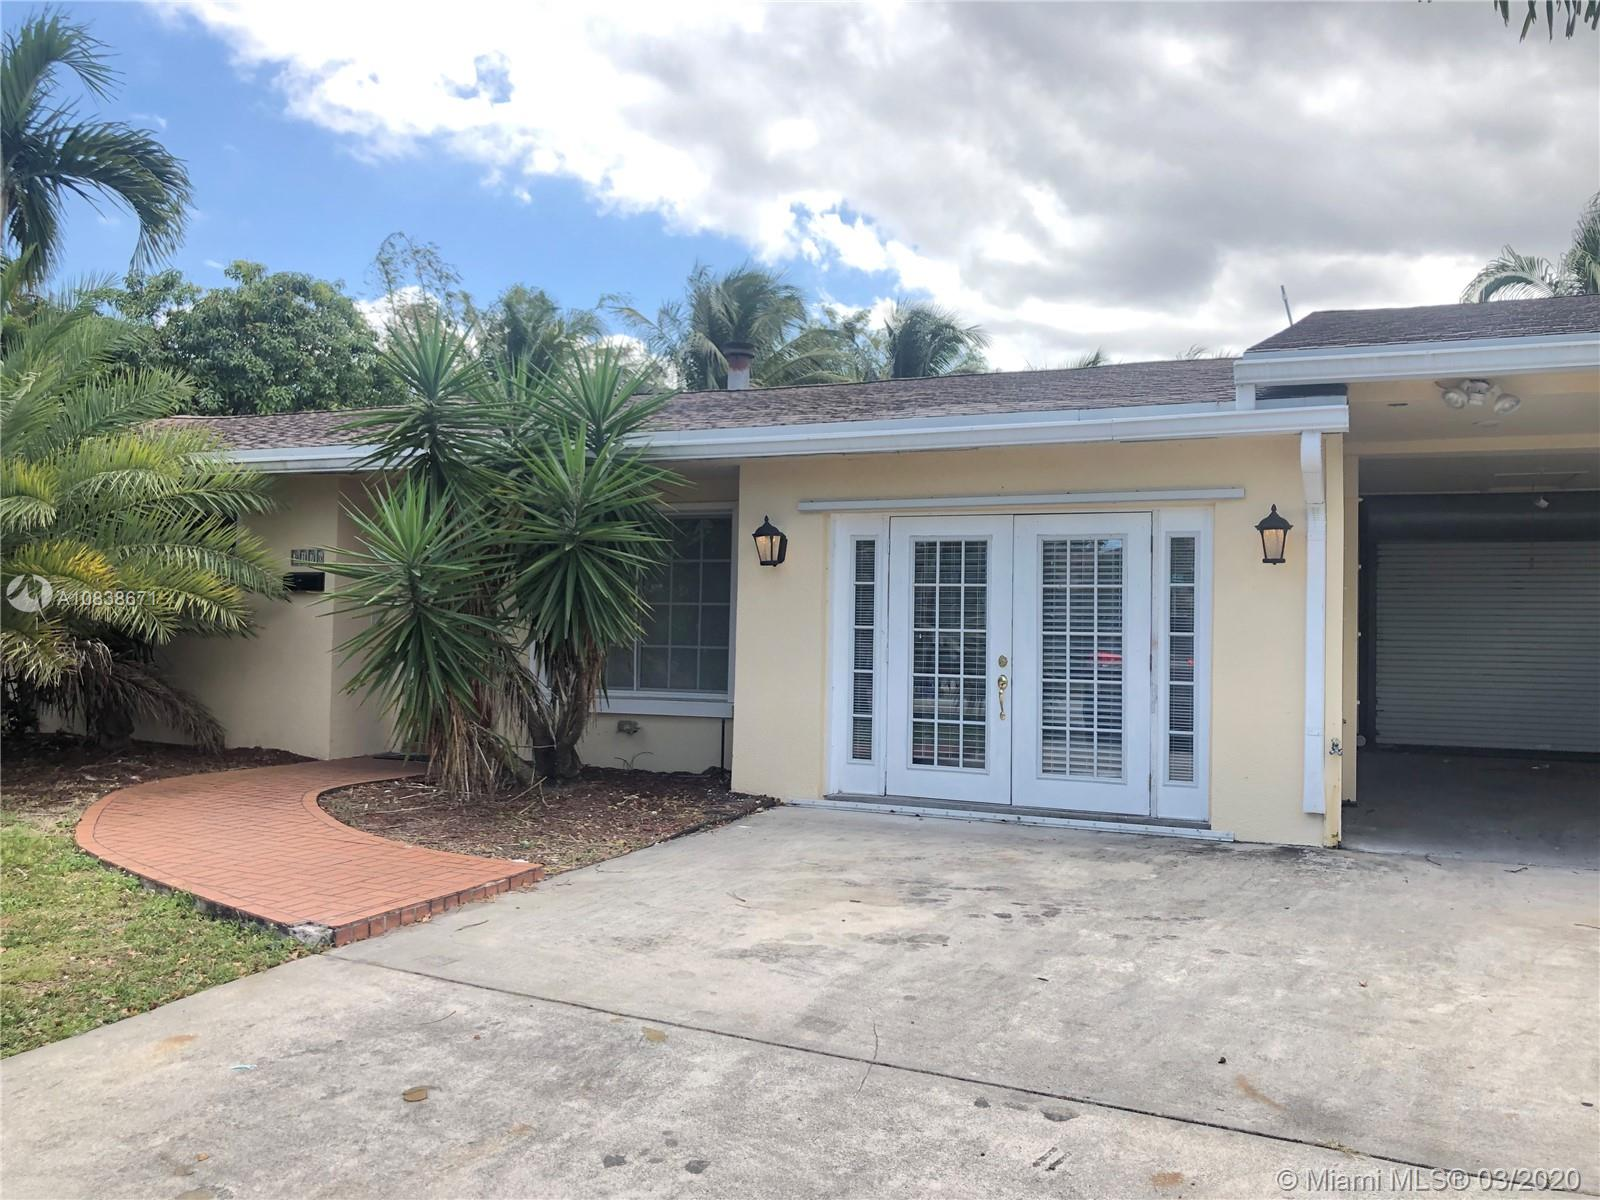 3176 NW 67th Ct # 0, Fort Lauderdale, Florida 33309, 4 Bedrooms Bedrooms, ,2 BathroomsBathrooms,Residential Lease,For Rent,3176 NW 67th Ct # 0,A10838671